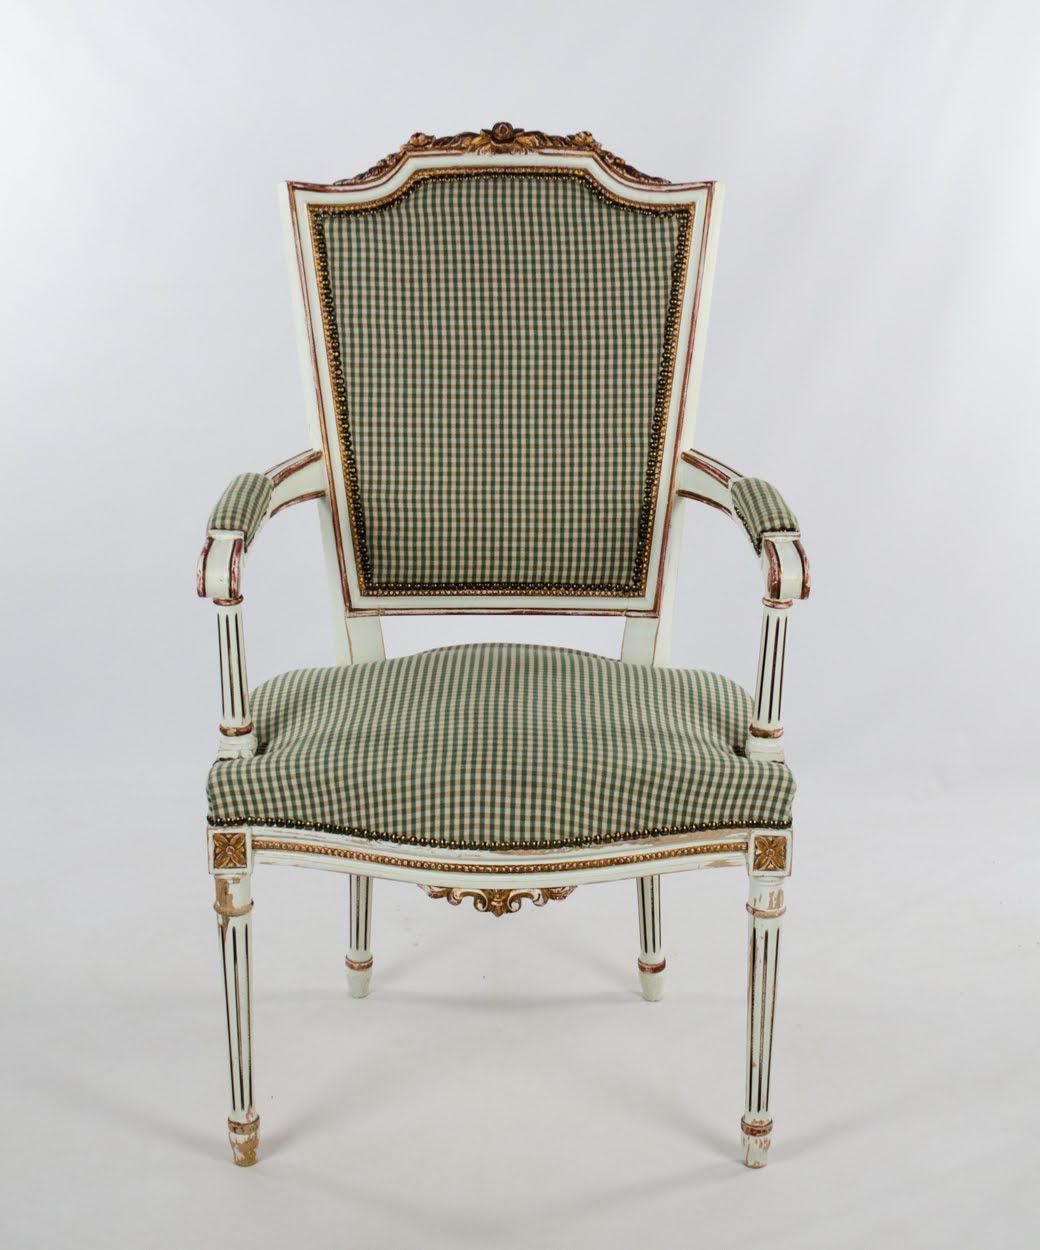 Early 20th Century Vintage French Style White And Plaid Upholstered